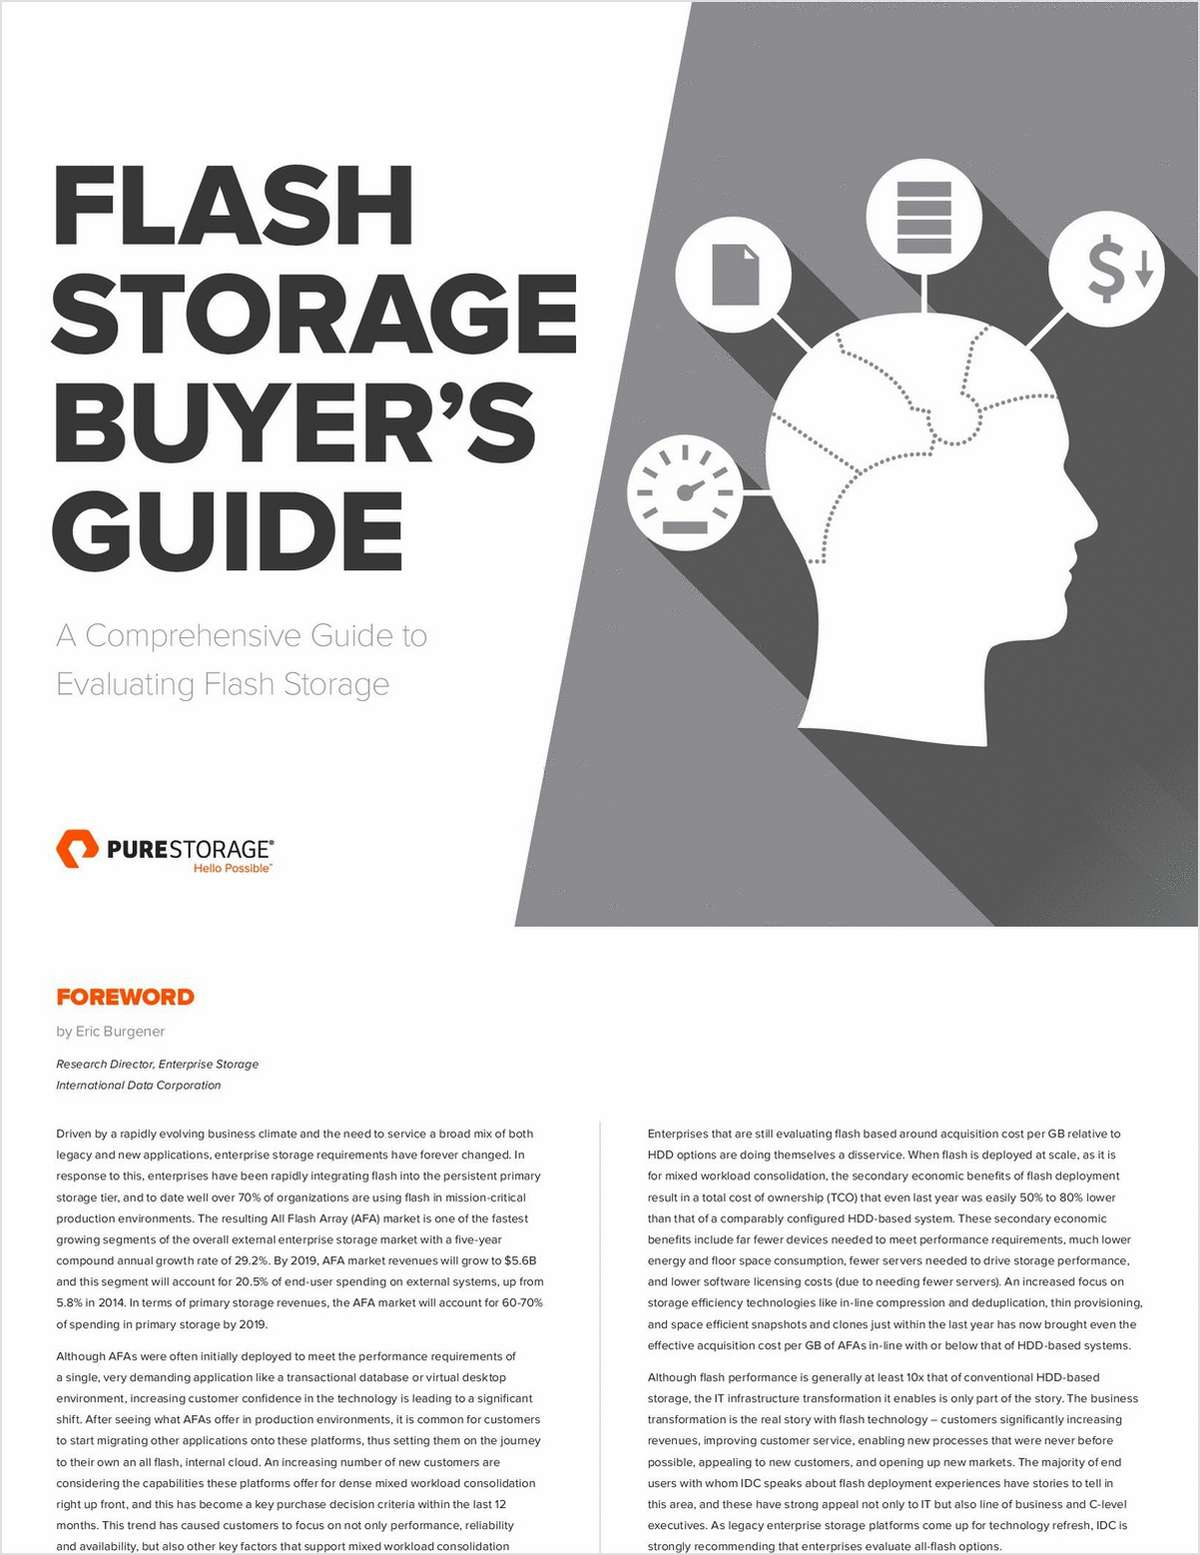 Flash Storage Buyer's Guide